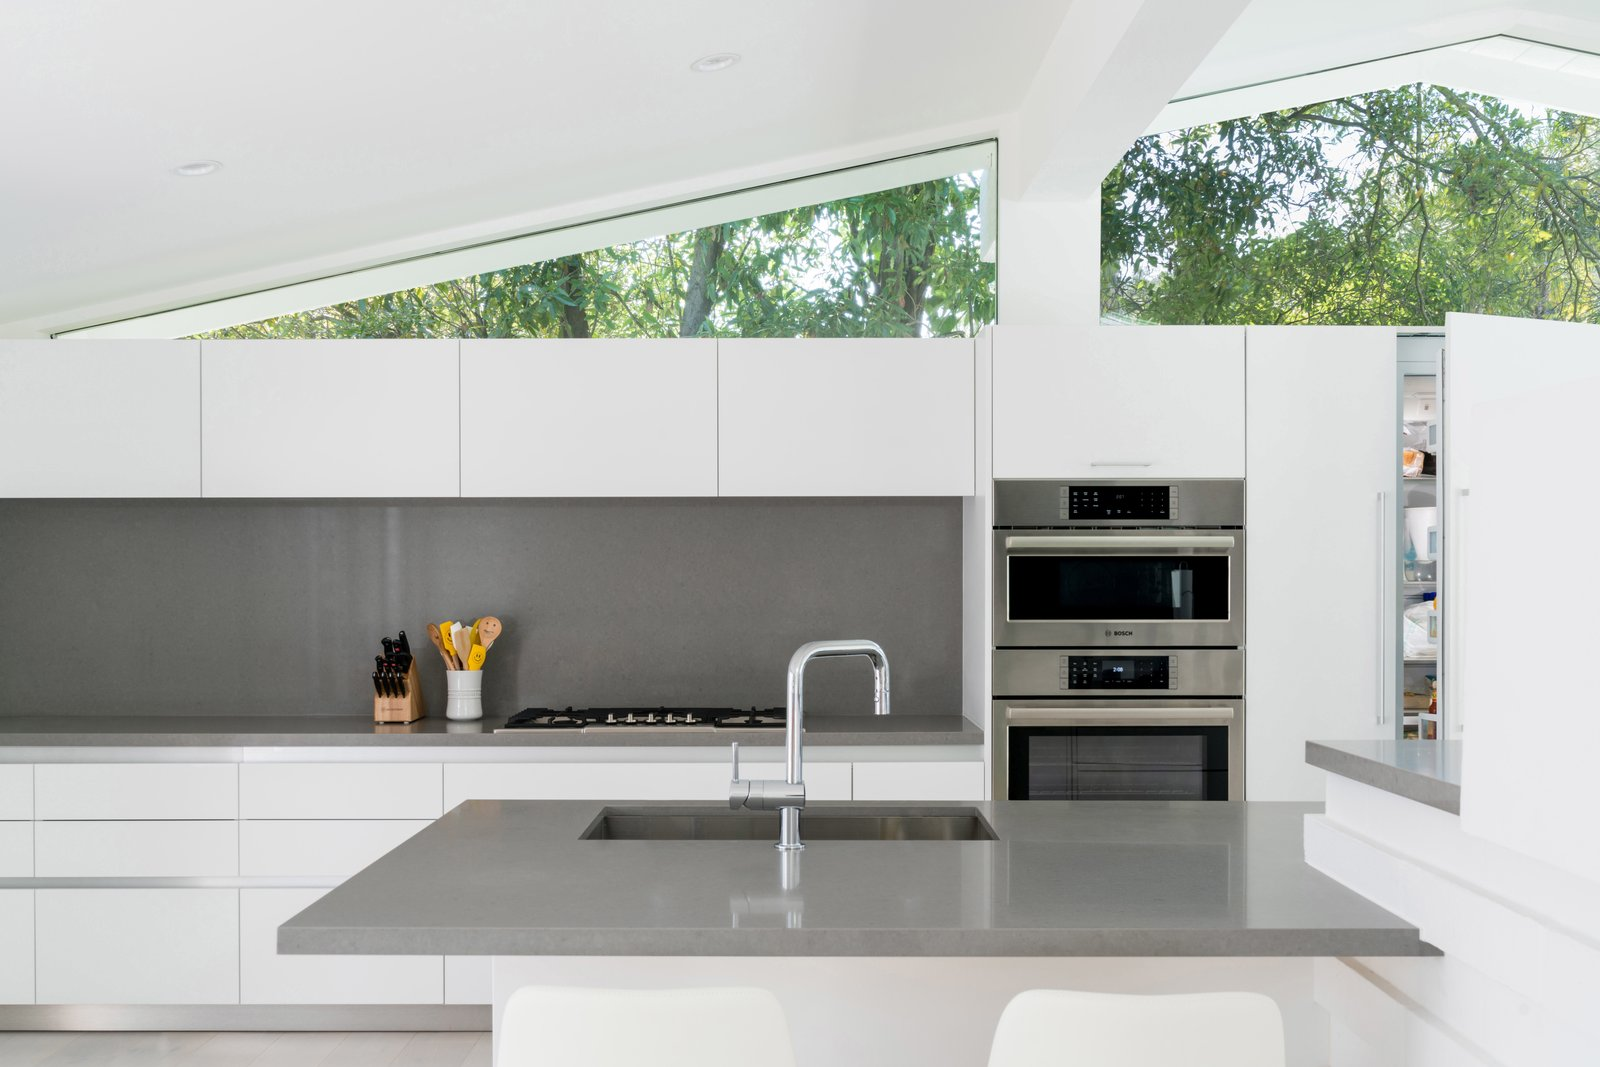 Kitchen, Engineered Quartz Counter, White Cabinet, Recessed Lighting, Wall Oven, and Undermount Sink The sleek oven duo, aligned beautifully with clerestories above, sits flush with kitchen cabinetry.  Photo 3 of 3 in A Breezy Midcentury Renovation in the Hollywood Hills